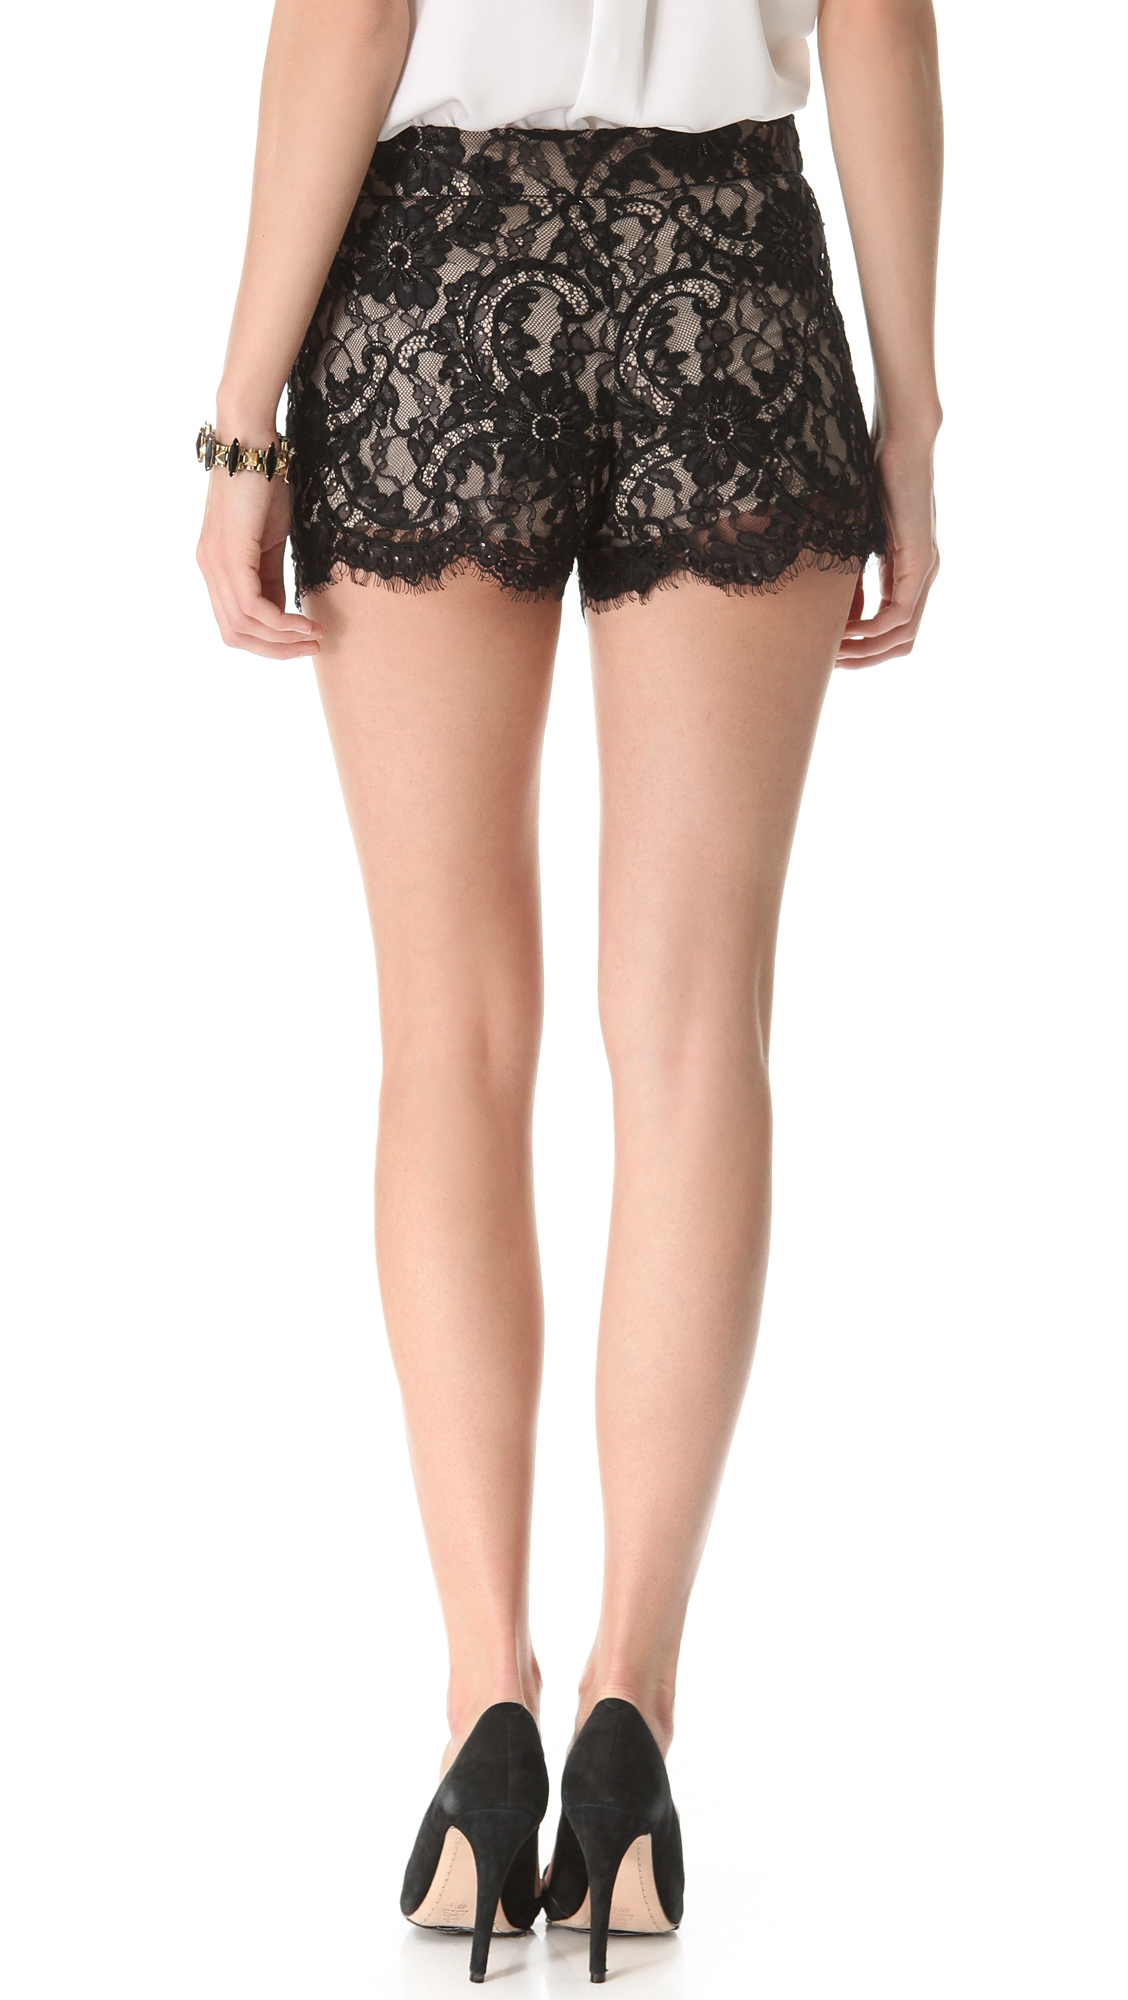 You searched for: lace high waisted shorts! Etsy is the home to thousands of handmade, vintage, and one-of-a-kind products and gifts related to your search. No matter what you're looking for or where you are in the world, our global marketplace of sellers can help you .